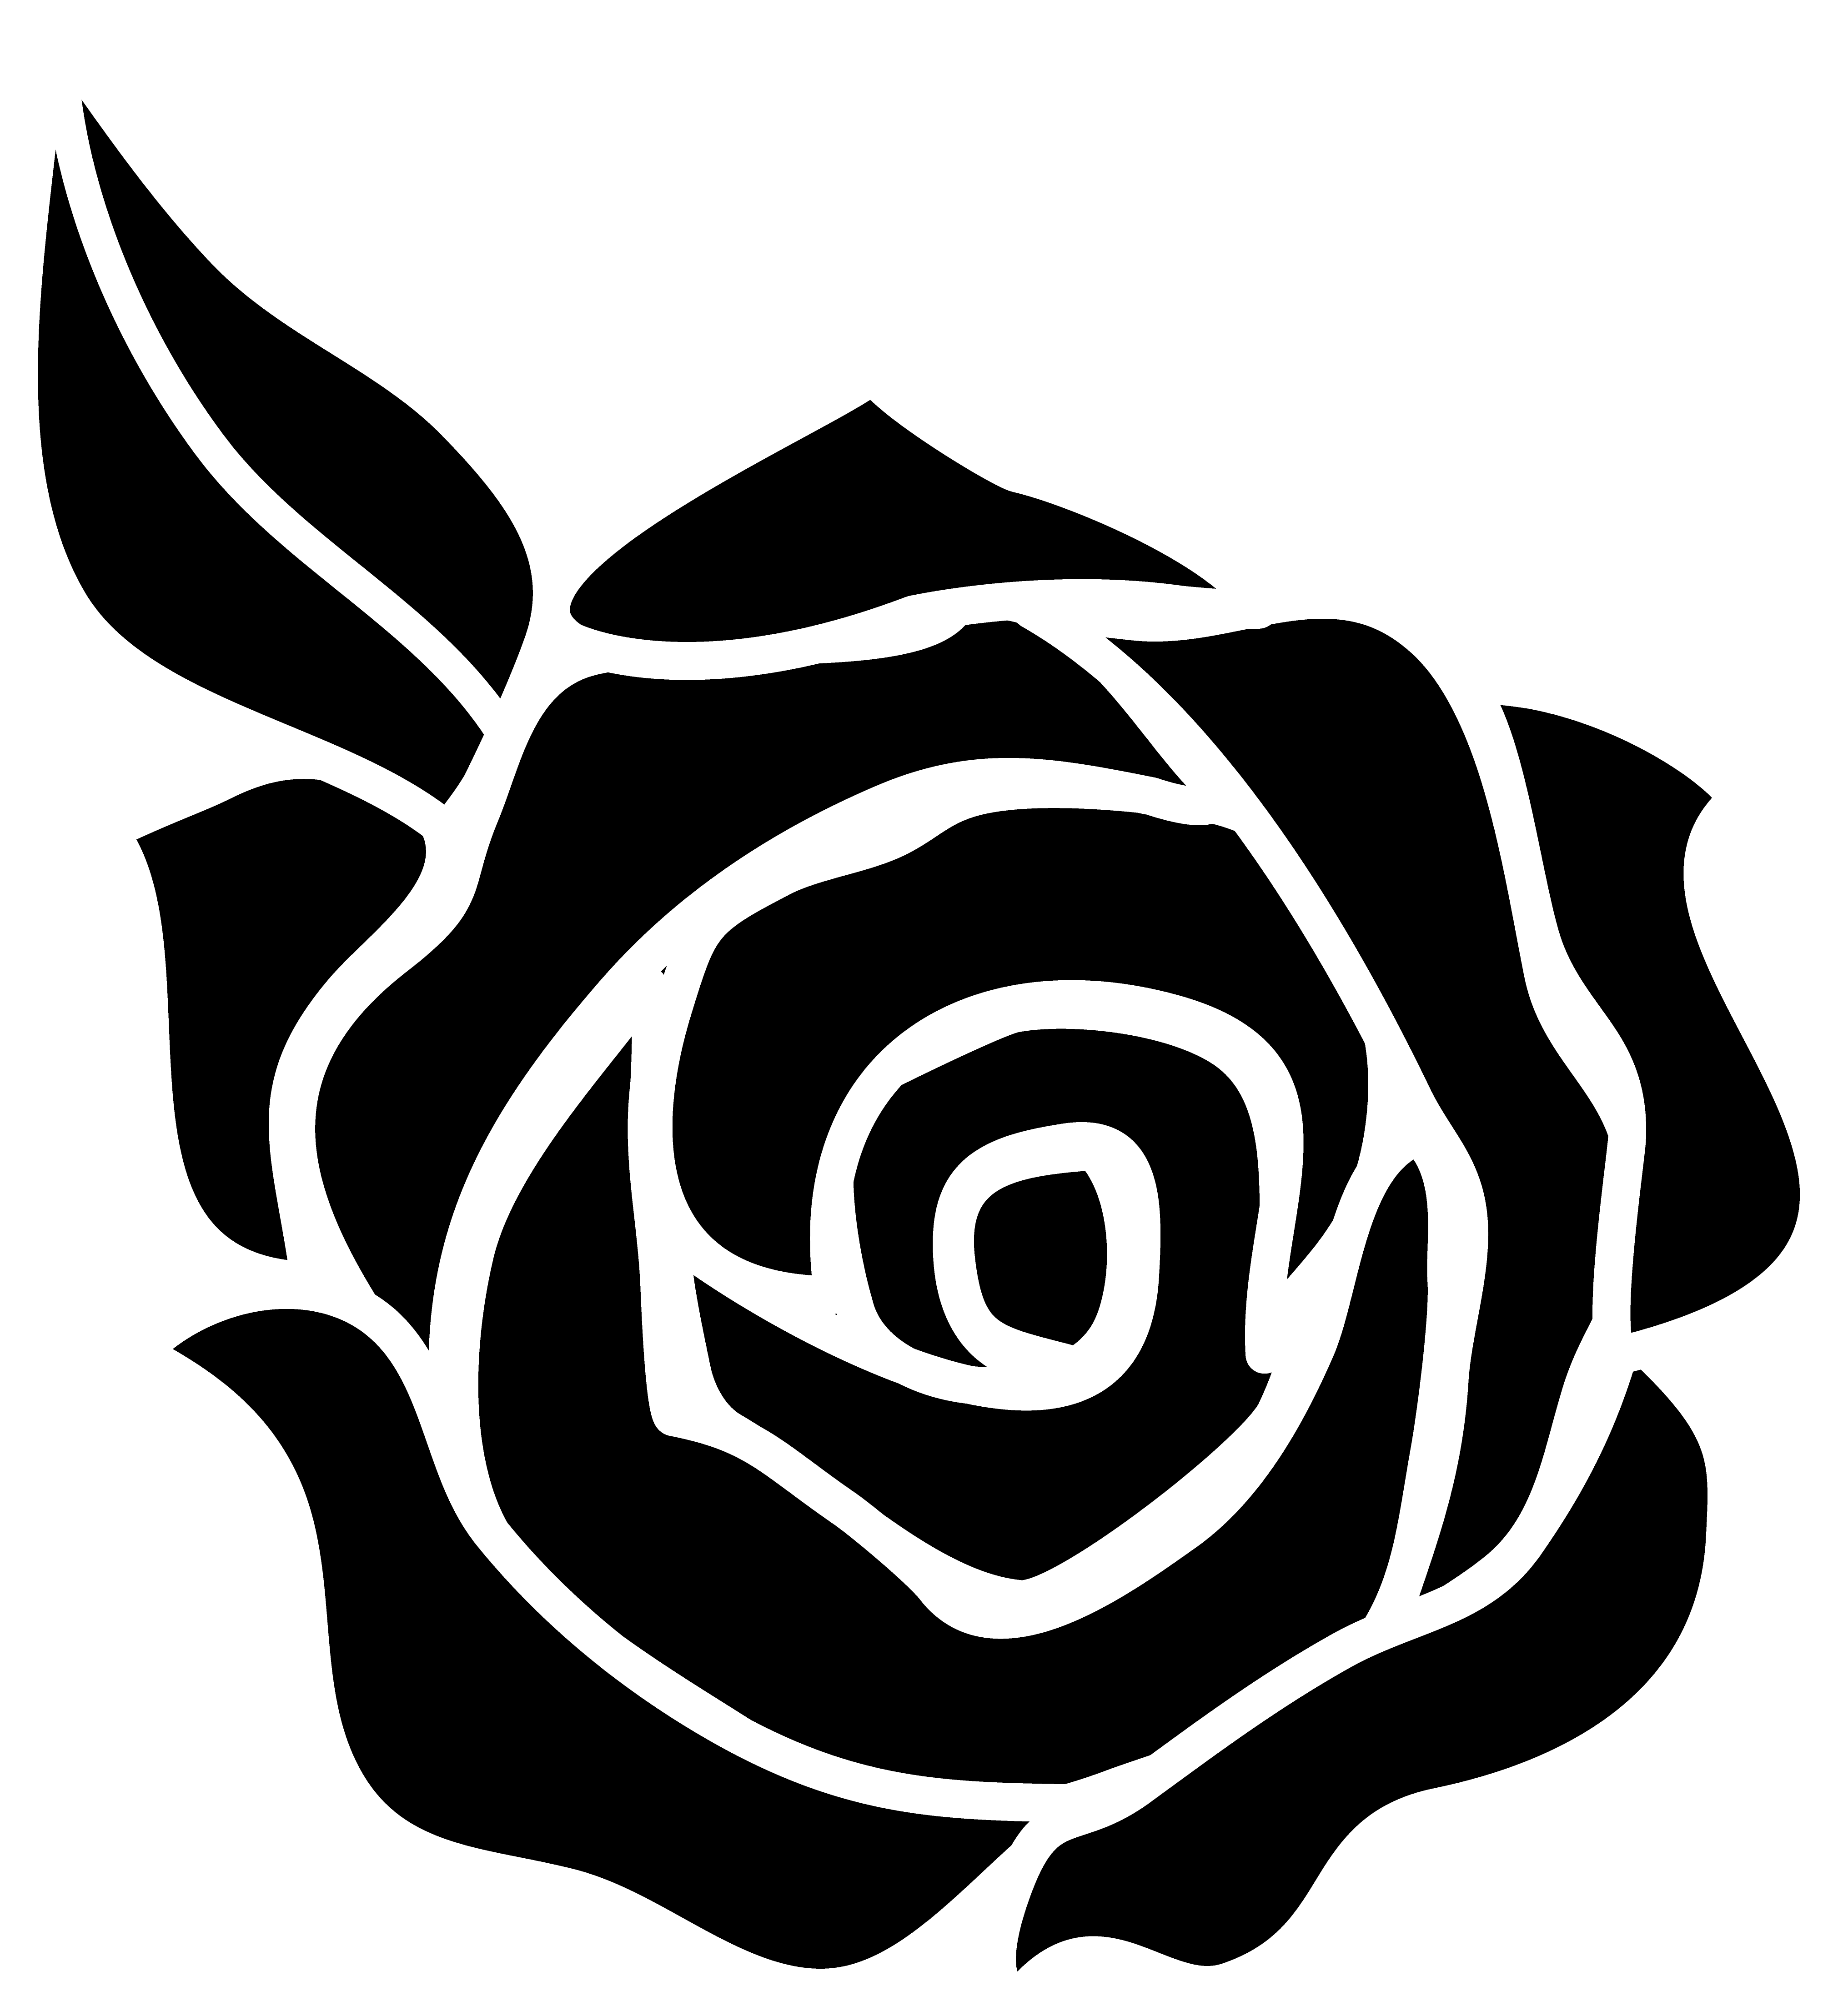 Rose black and white black an - Rose Clipart Black And White